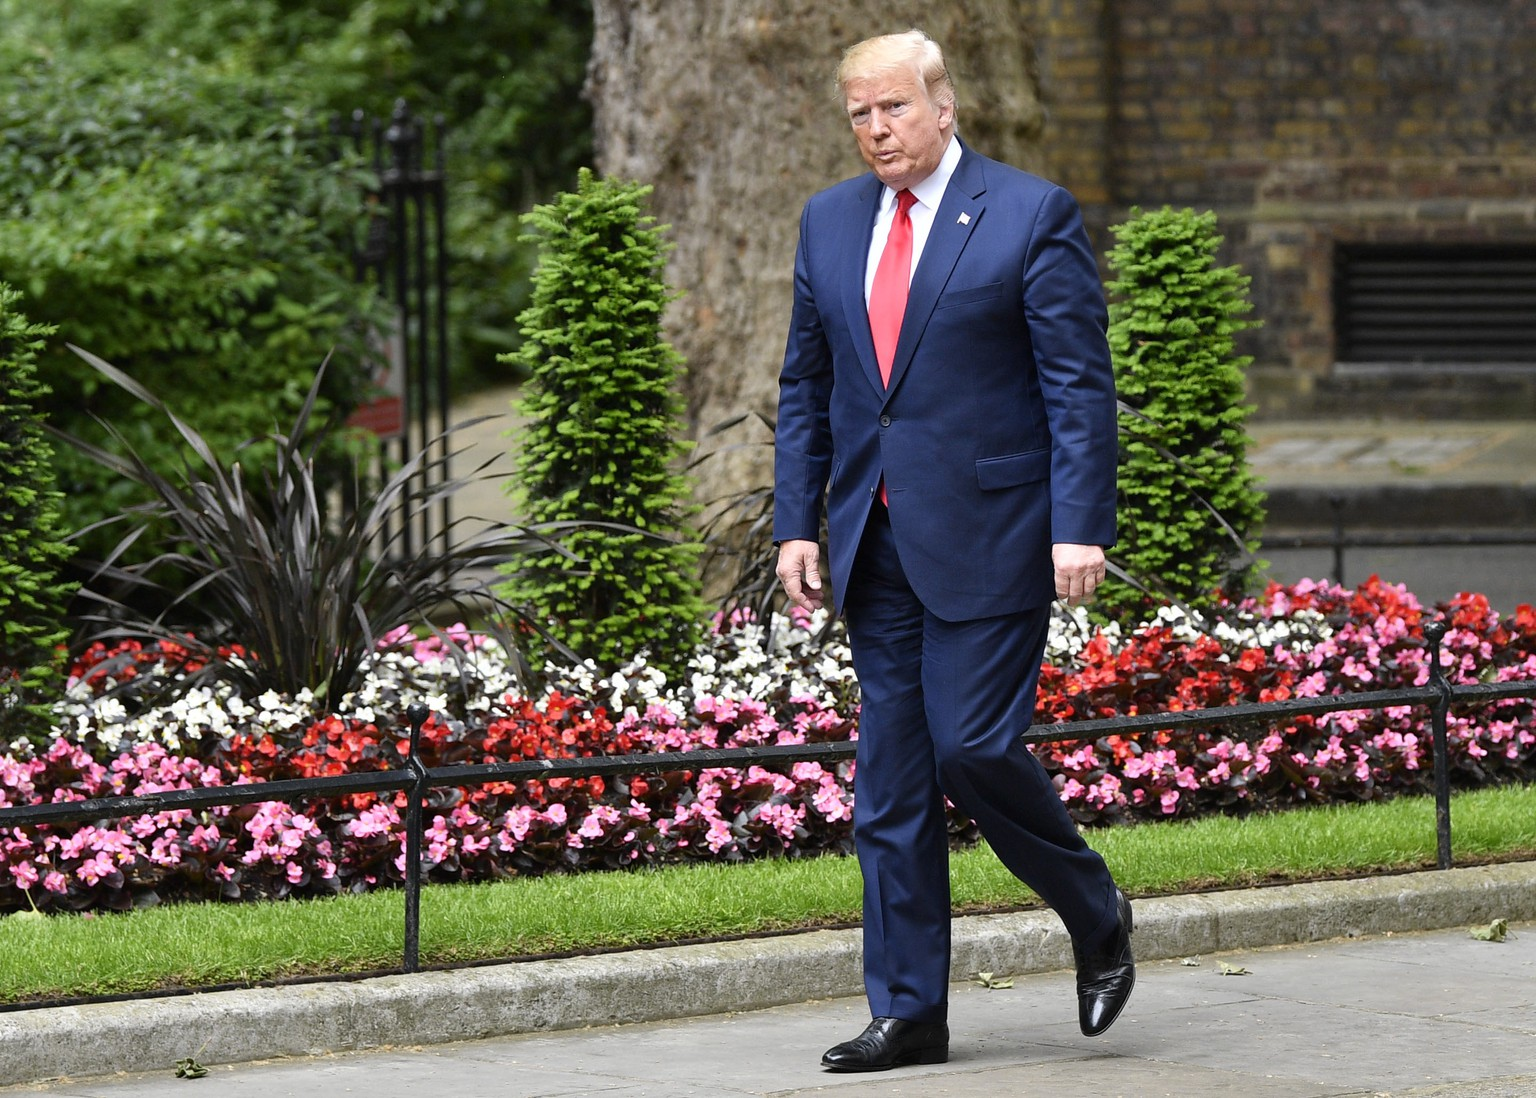 epa07624147 US President Donald J. Trump attends a meeting with Britain's Prime Minister Theresa May at her official residence at 10 Downing Street in London, Britain, 04 June 2019. US President Trump and his wife are on a three-day official visit to Britain.  EPA/NEIL HALL